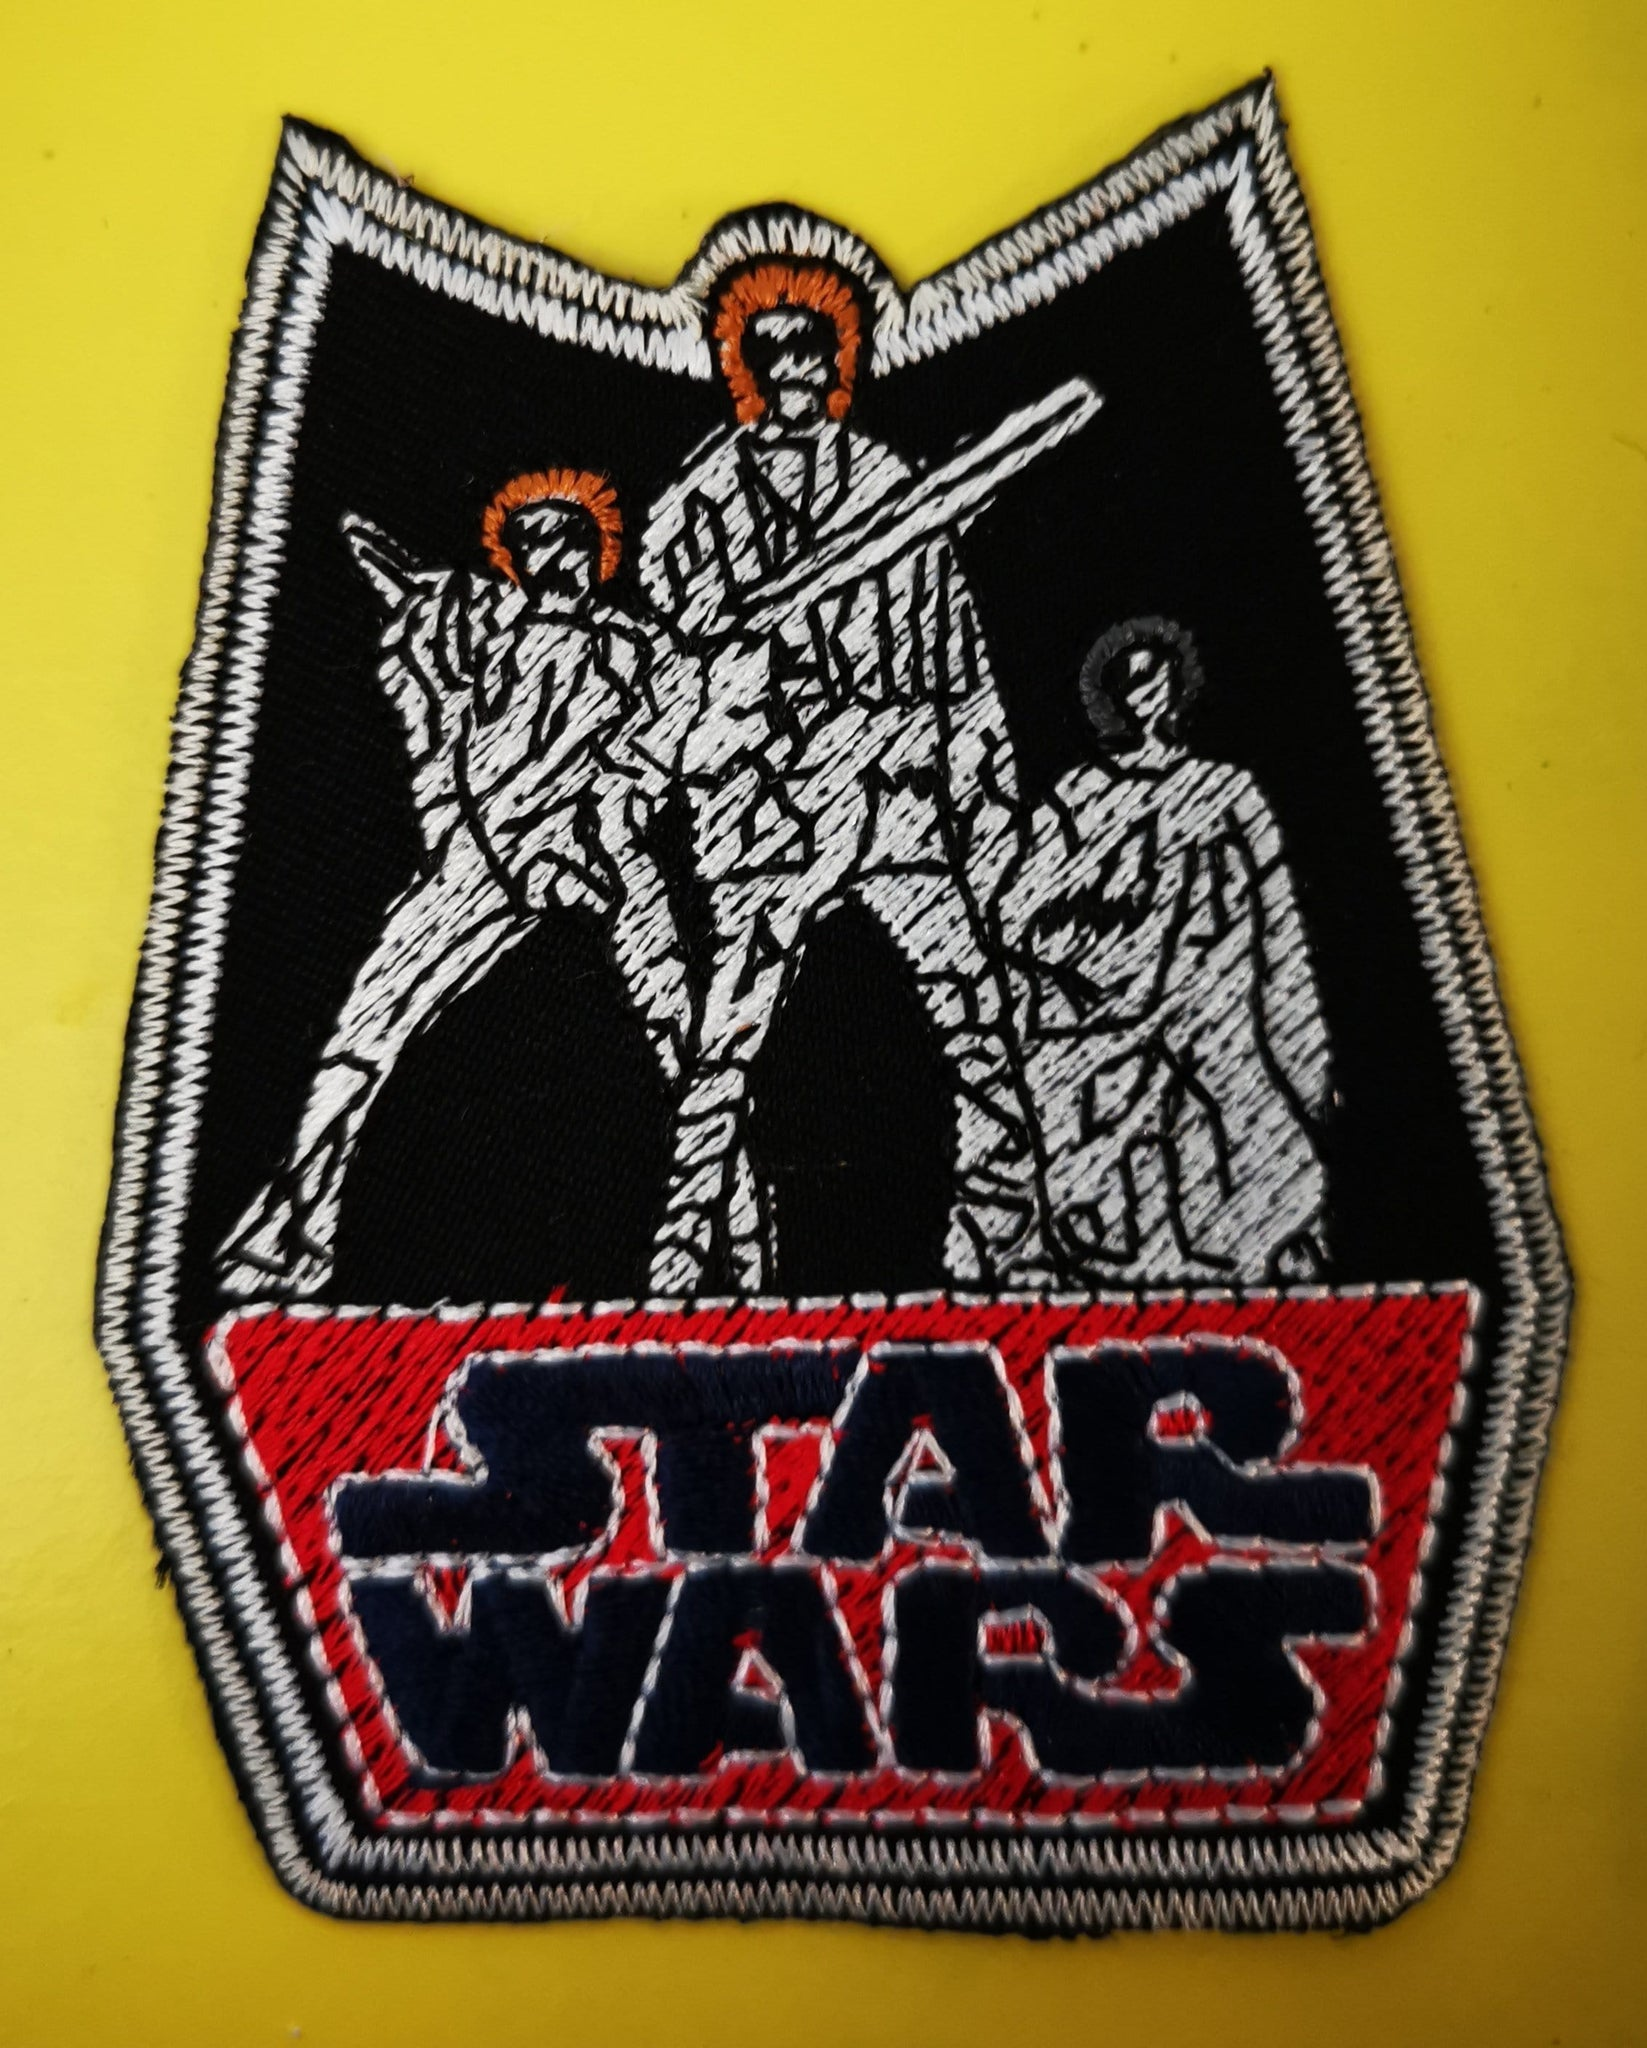 Star Wars 4 Embroidered Iron on Patch